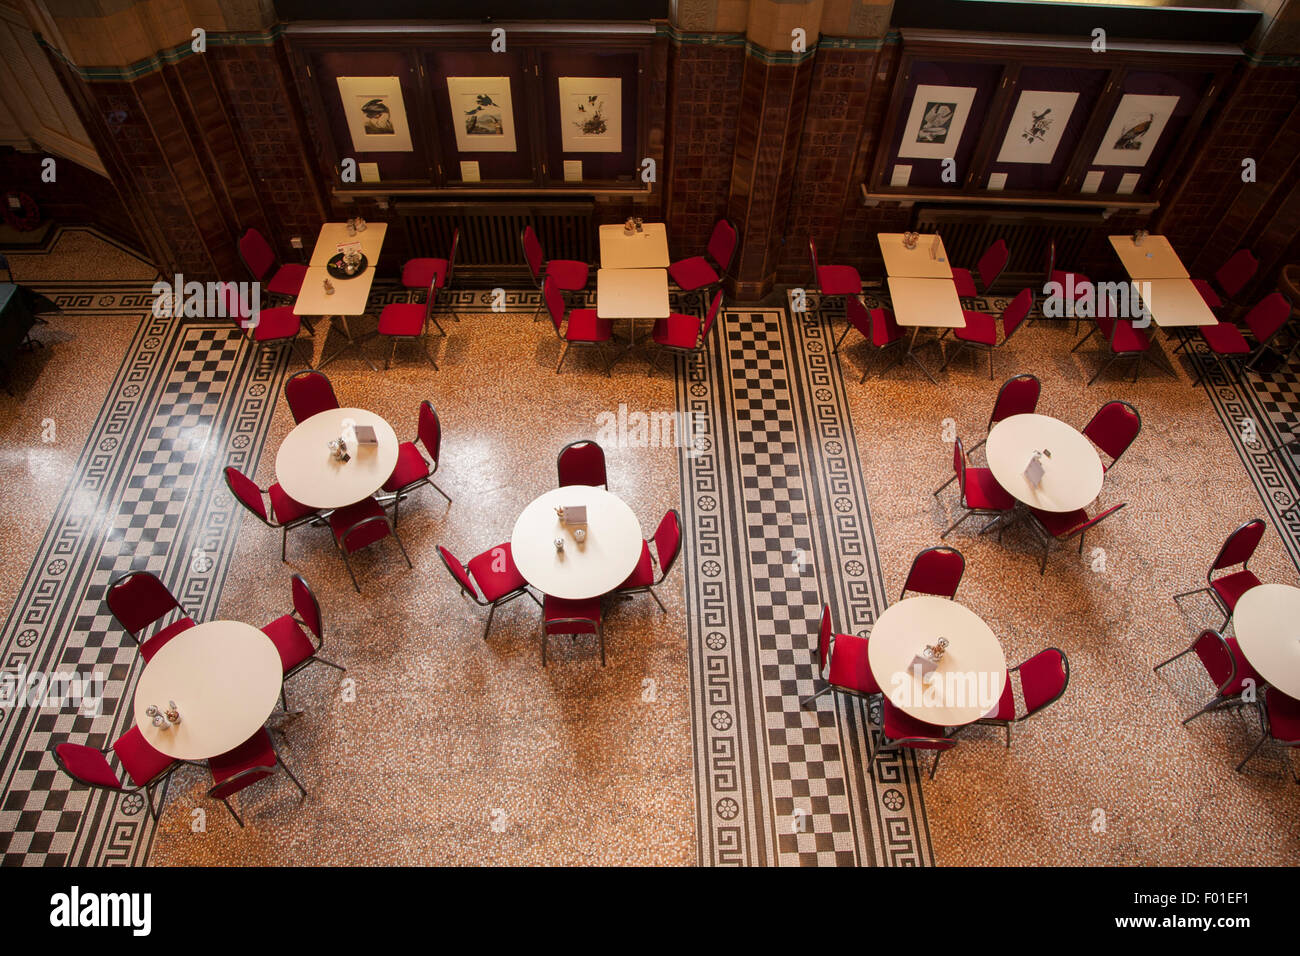 Liverpool University Victoria Building Gallery And Museum Cafe England UK